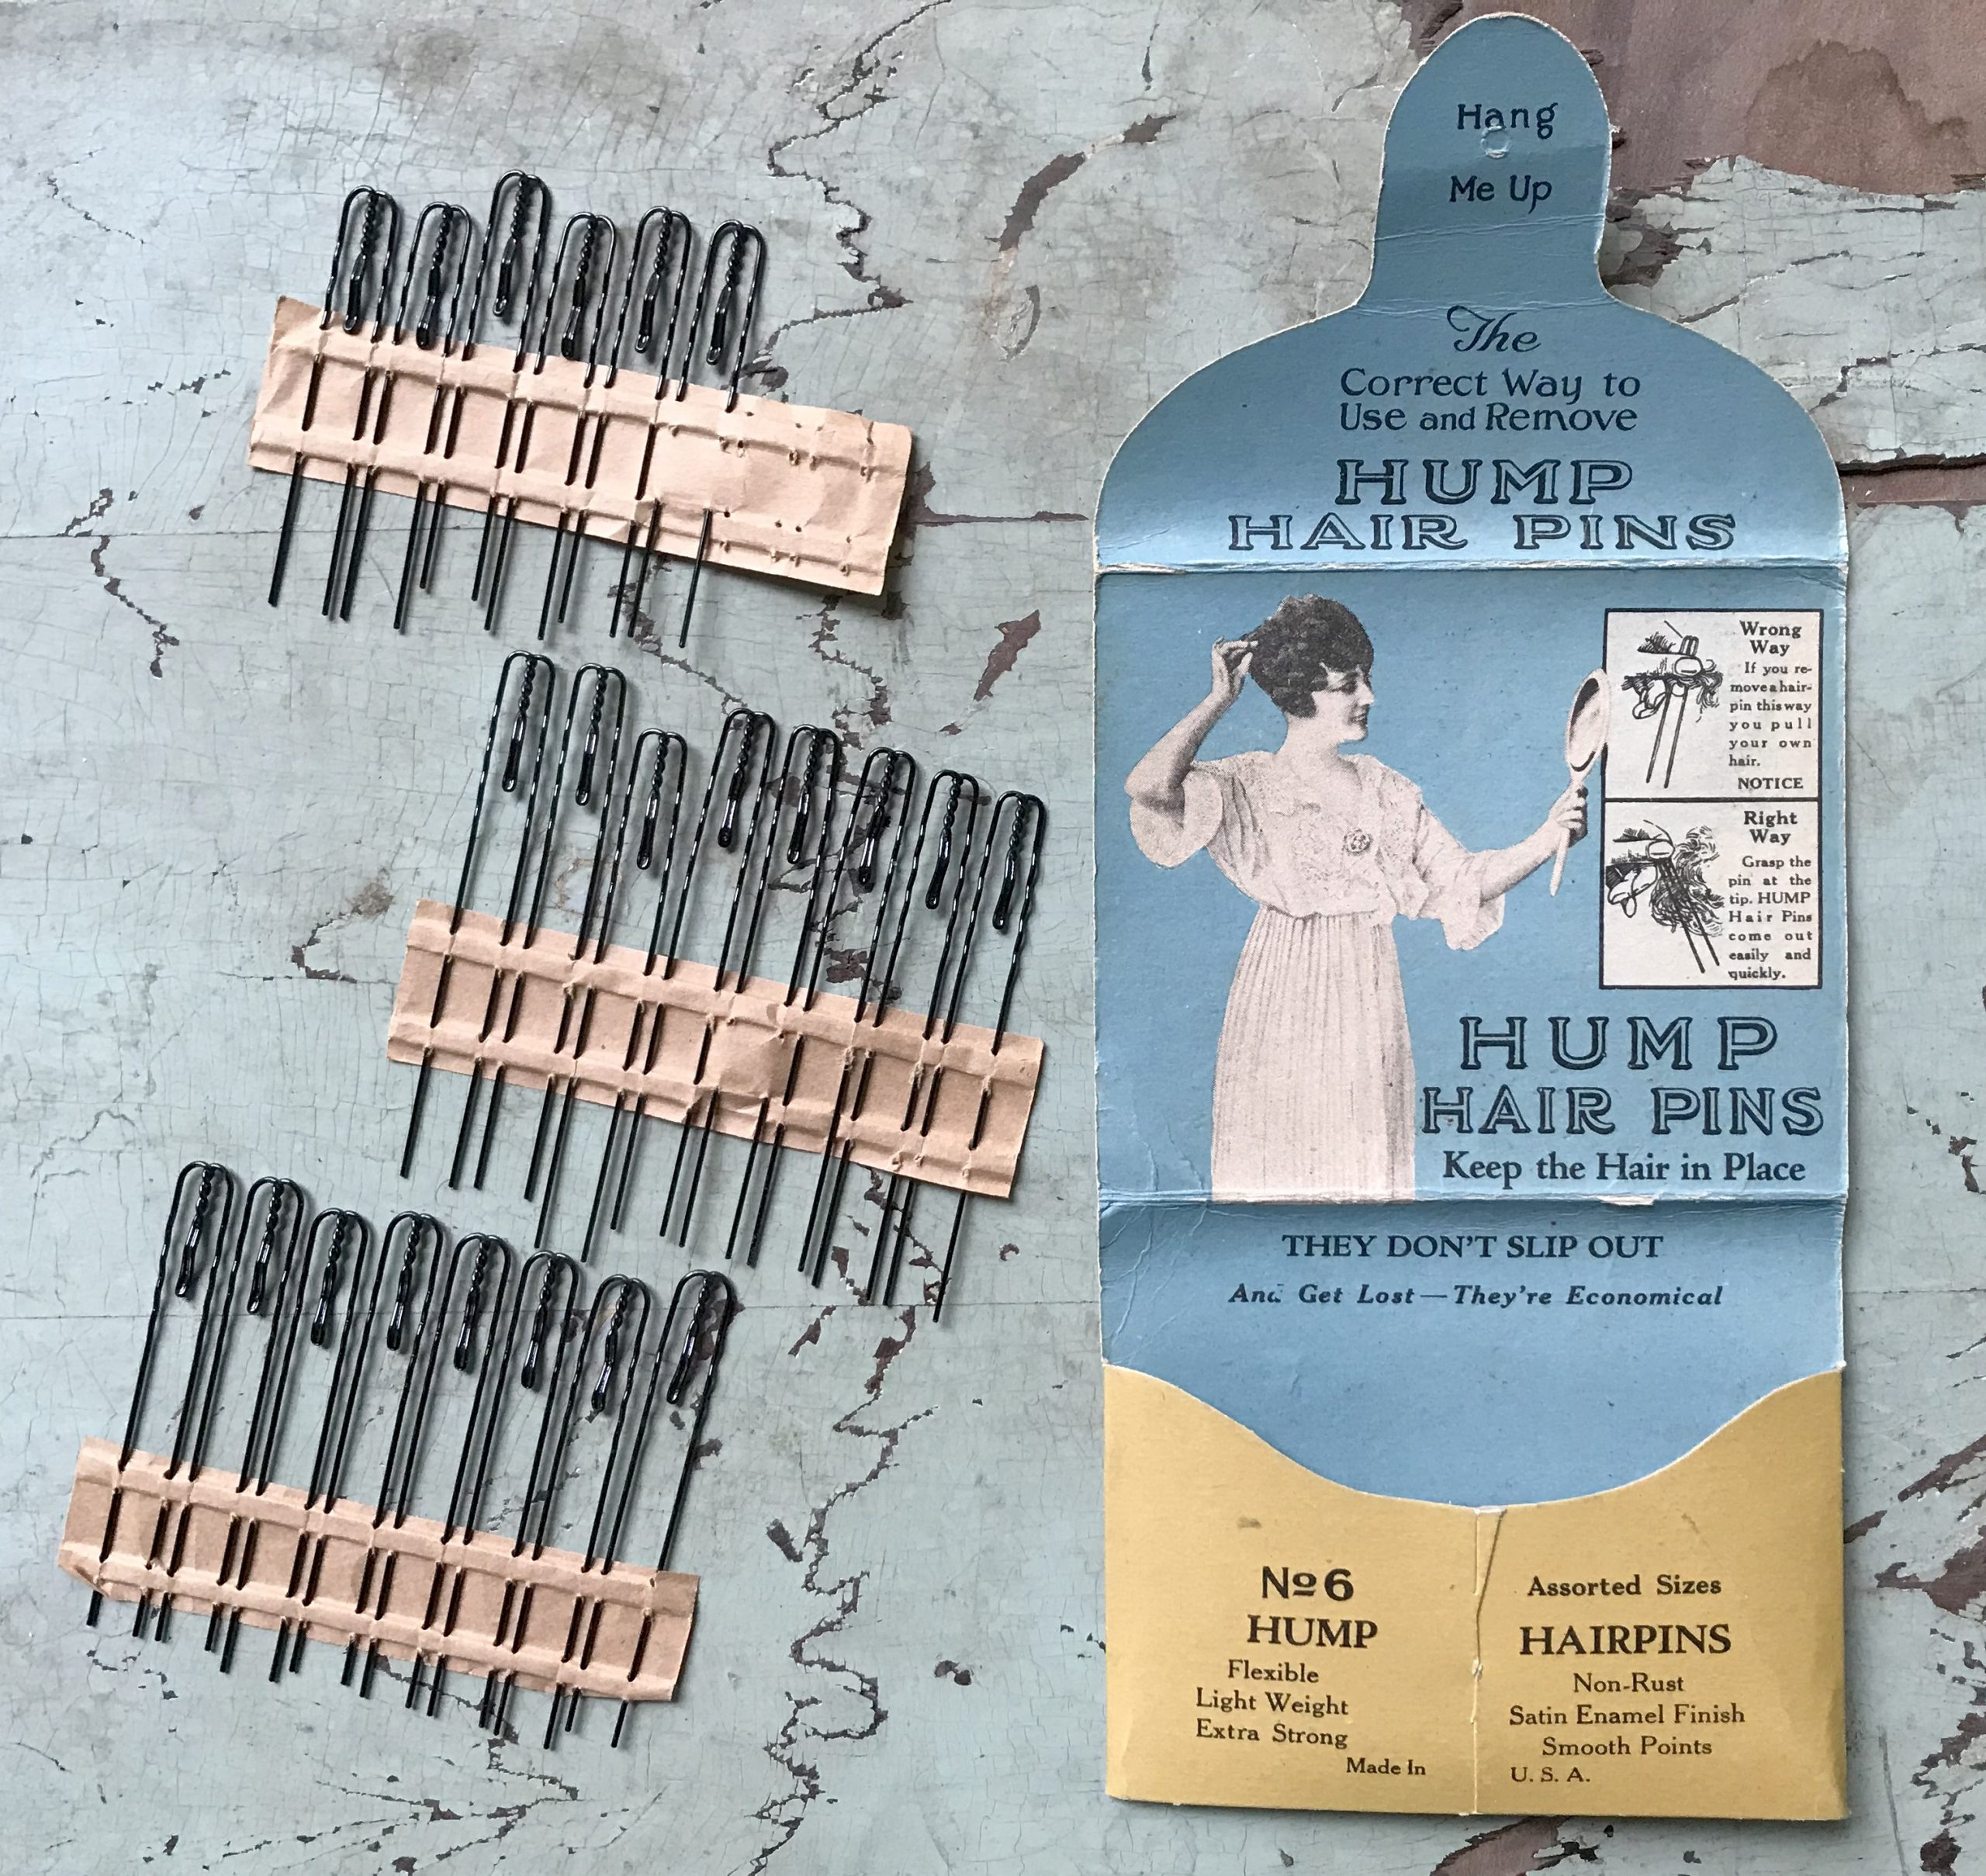 Hump Hair Pin History